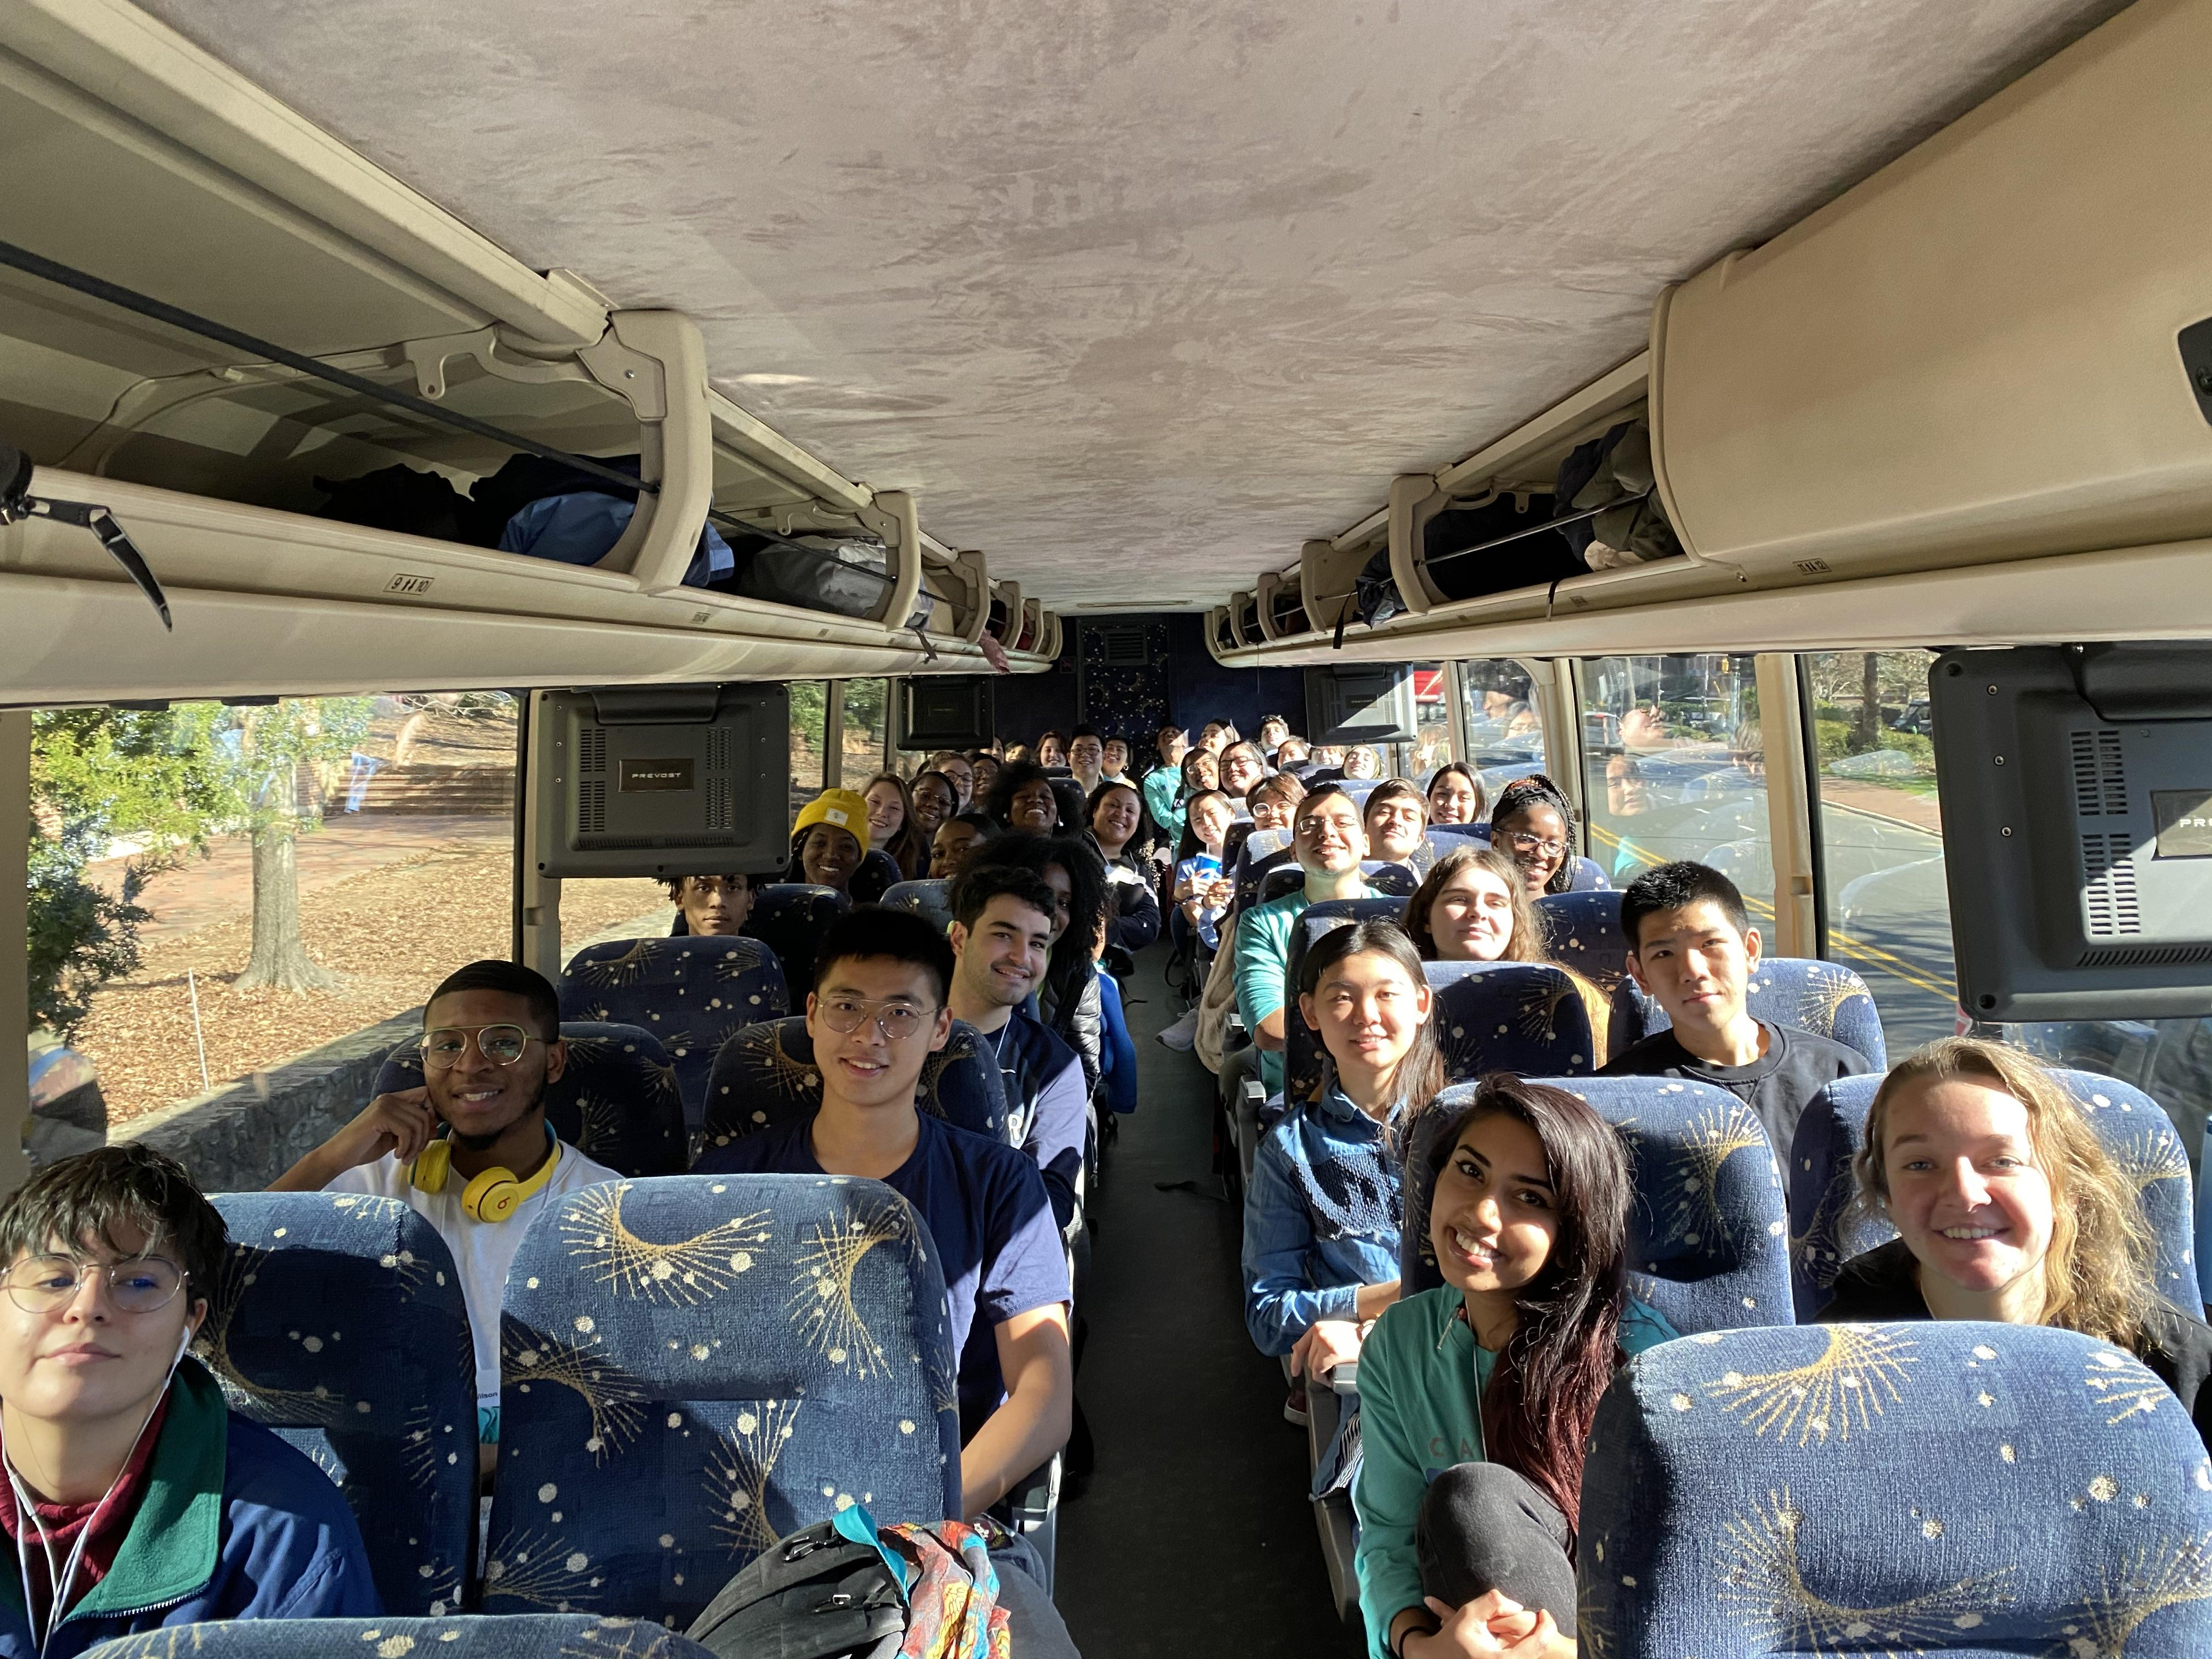 Students smiling on bus